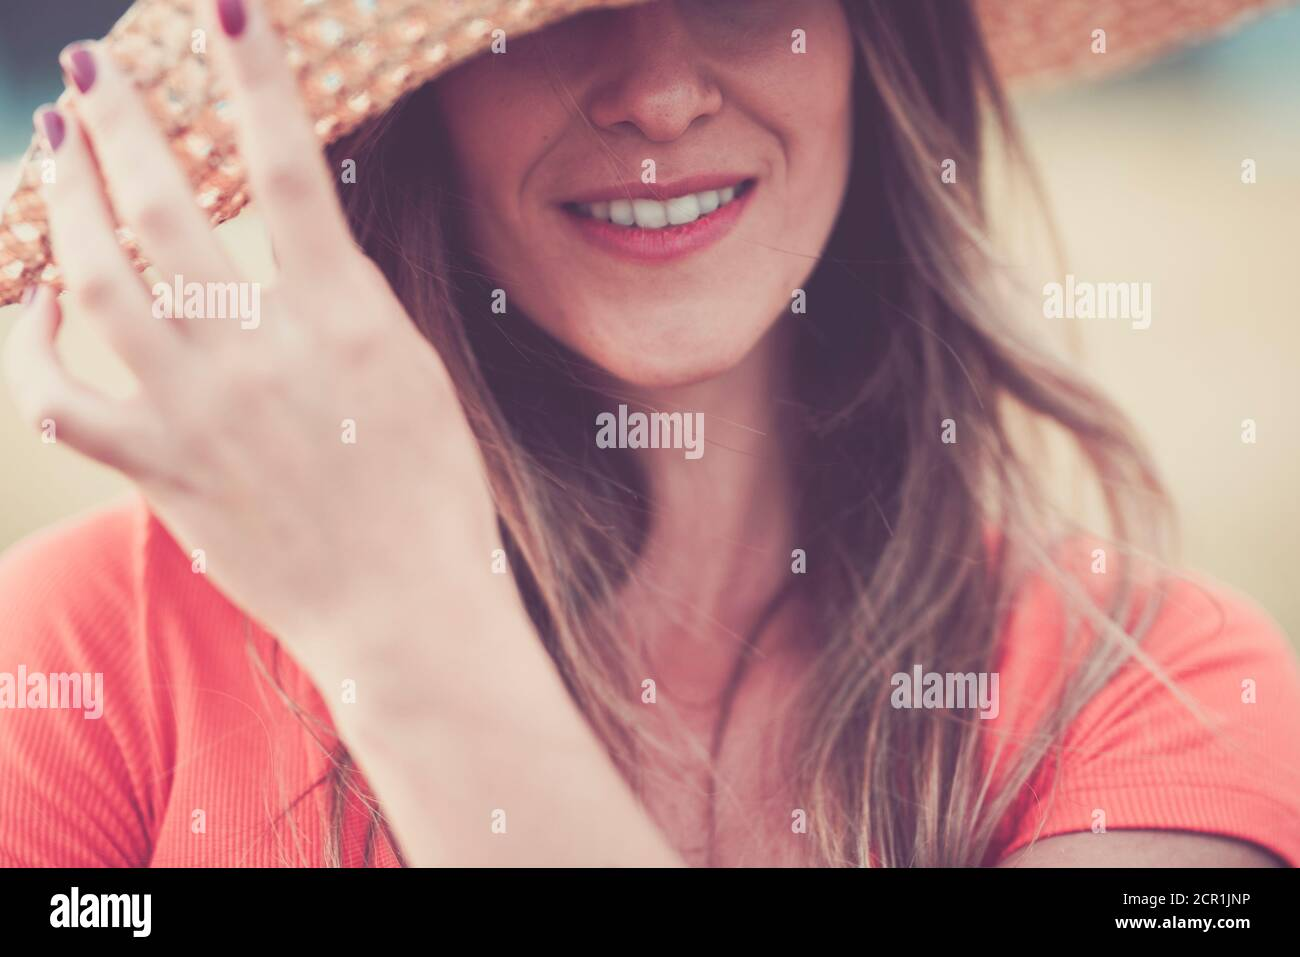 Close up woman portrait in vintage pink tones with cheerful and happy hidden eyes young caucasian lady with long beautiful hair and hat - concept of Stock Photo